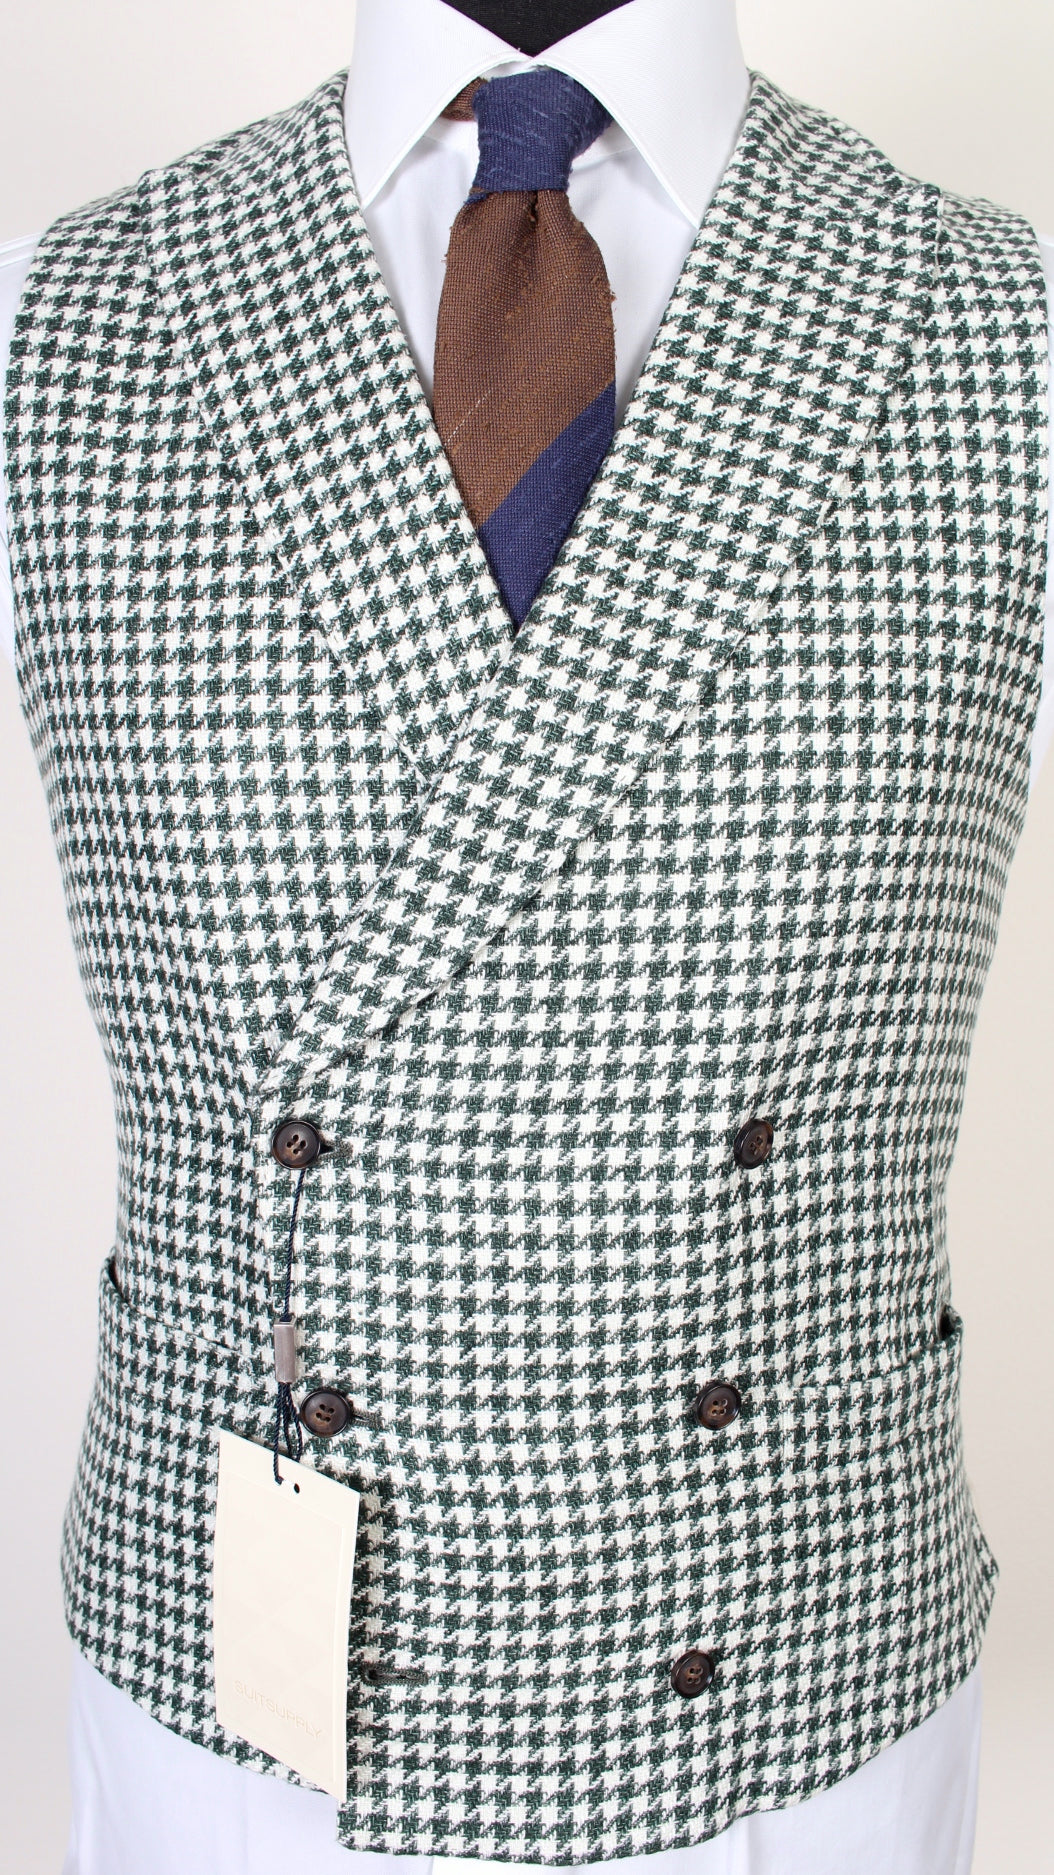 New Suitsupply PIERRE Green Houndstooth 100% Linen DB Waistcoat - Size 42R